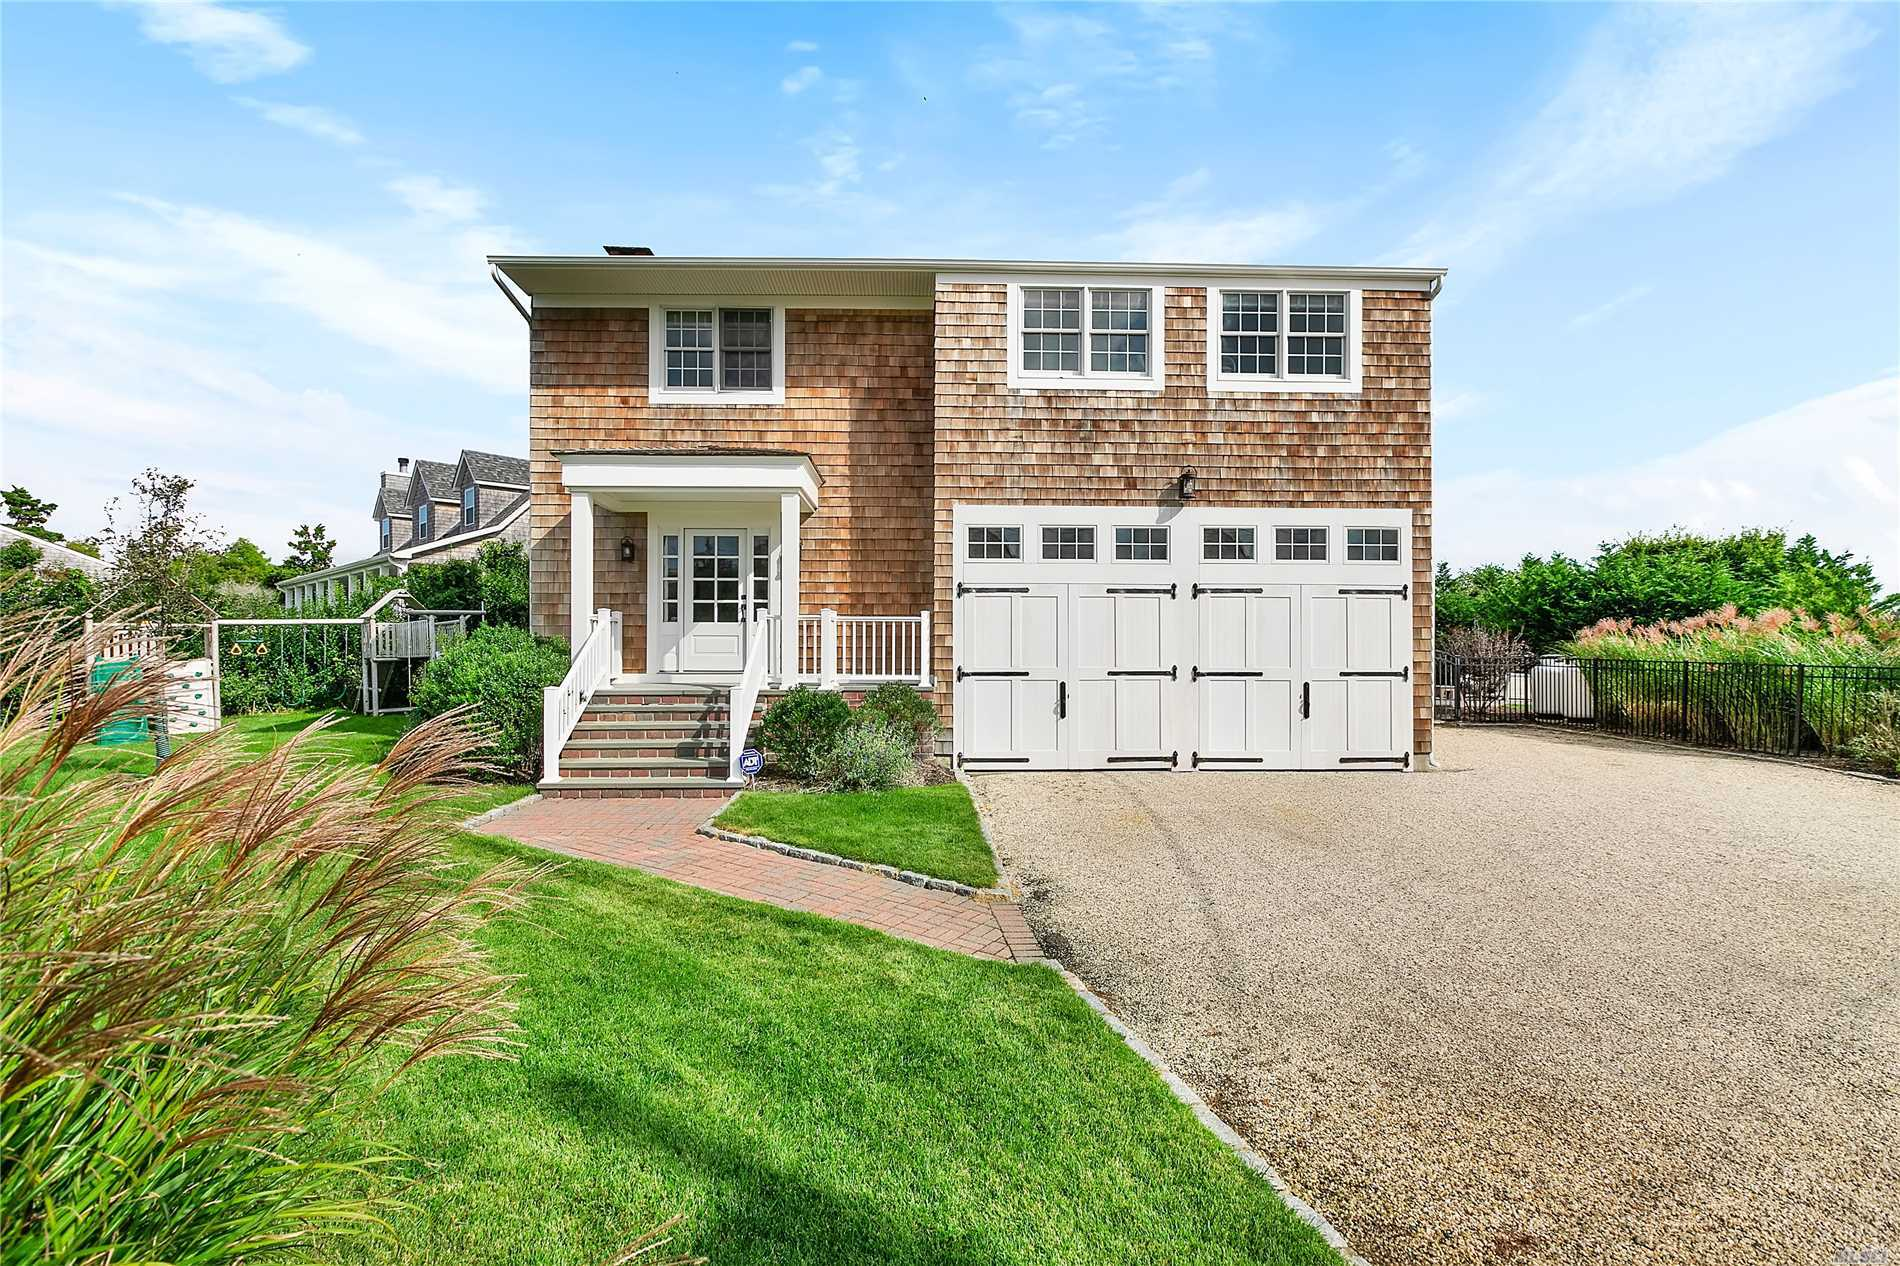 Photo of home for sale at 25 Exchange Pl, Westhampton Bch NY